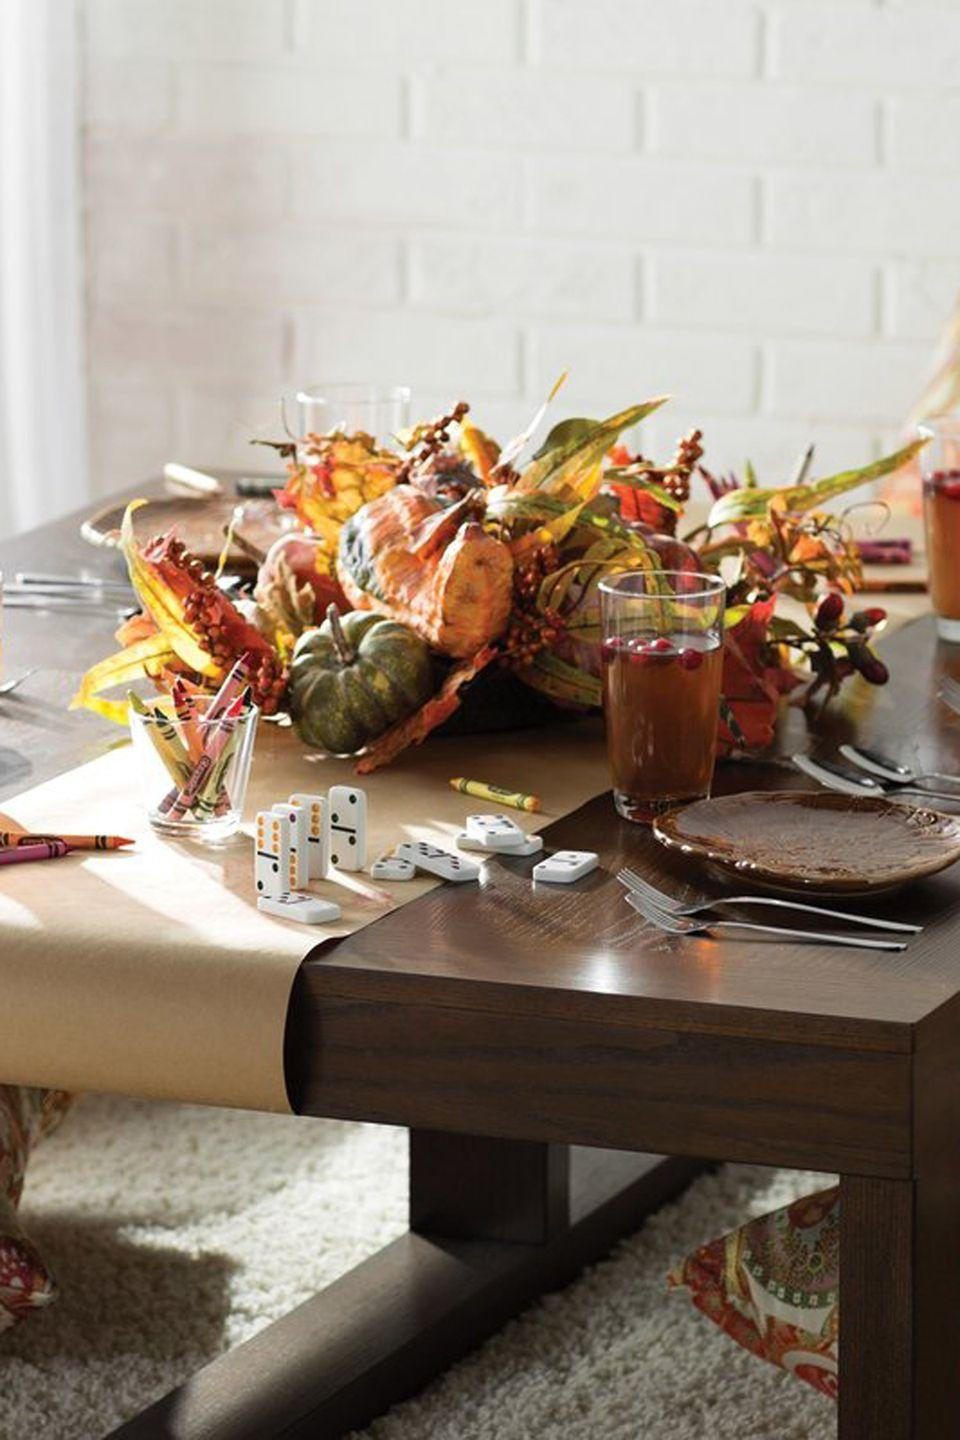 """<p>Add some harvest-time charm to the kids' table with this durable centerpiece, featuring a mix of faux berries, gourds, leaves that can be used year after year.<br></p><p><strong><a class=""""link rapid-noclick-resp"""" href=""""https://go.redirectingat.com?id=74968X1596630&url=https%3A%2F%2Fwww.wayfair.com%2Fkeyword.php%3Fkeyword%3Dfall%2Bcenterpiece%26command%3Ddosearch%26new_keyword_search%3Dtrue&sref=https%3A%2F%2Fwww.countryliving.com%2Fentertaining%2Fg2130%2Fthanksgiving-centerpieces%2F"""" rel=""""nofollow noopener"""" target=""""_blank"""" data-ylk=""""slk:SHOP FALL CENTERPIECES"""">SHOP FALL CENTERPIECES</a></strong></p>"""